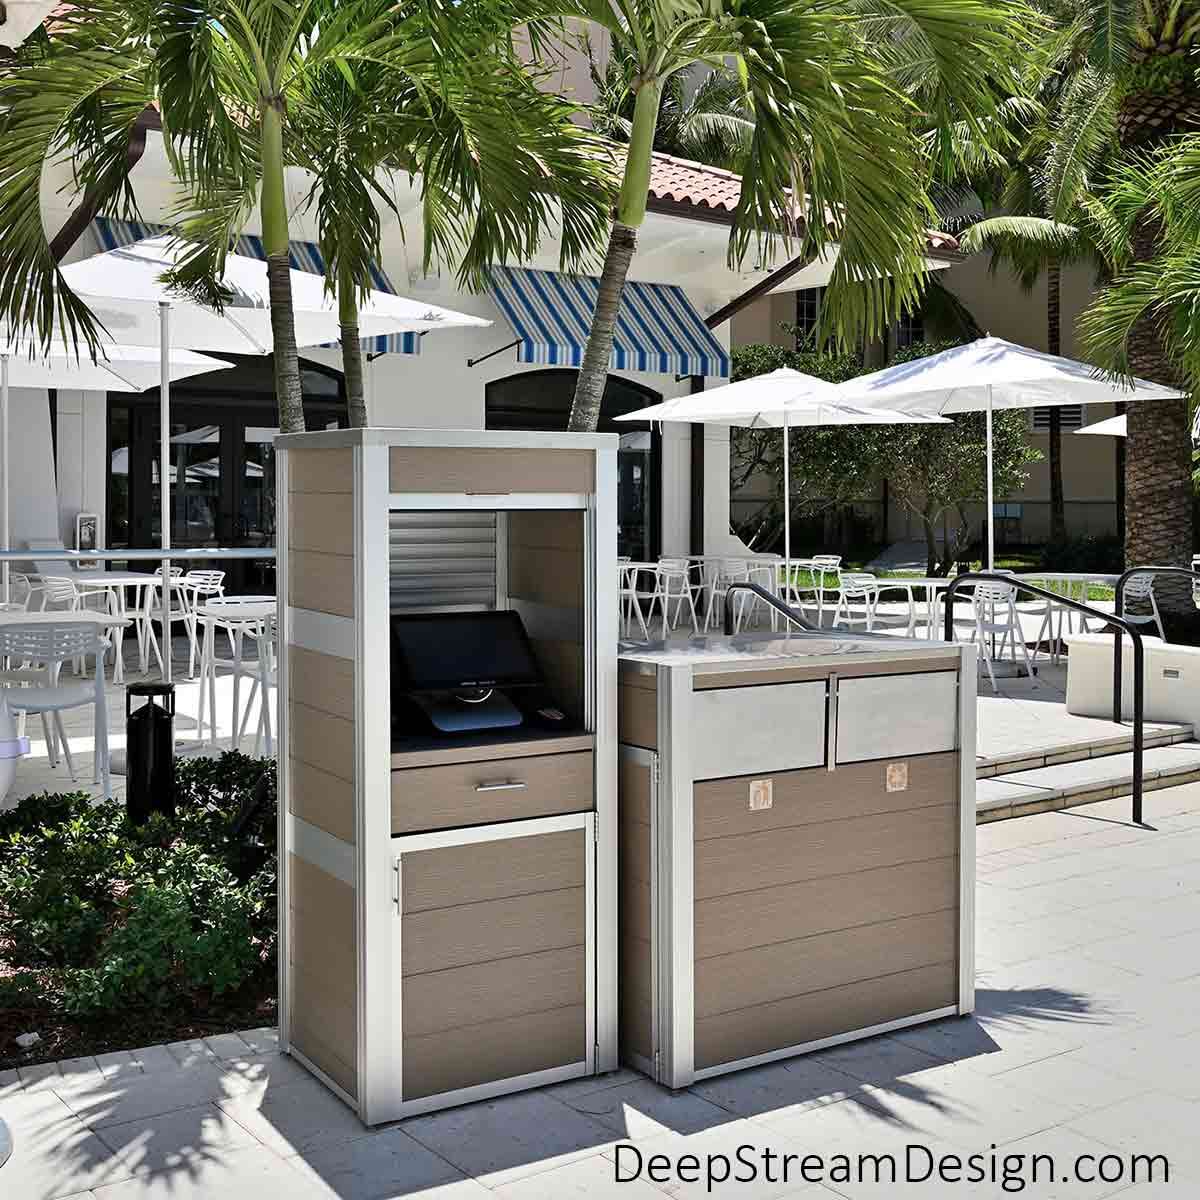 A Modern Commercial Recycling and Trash Bin on wheels next to a companion custom cabinet housing a remote point-of-sale-terminal at a tropical water park and restaurant complex. Both fixtures are made with 316 stainless steel lids, anodized aluminum legs, and maintenance free recycled plastic lumber.